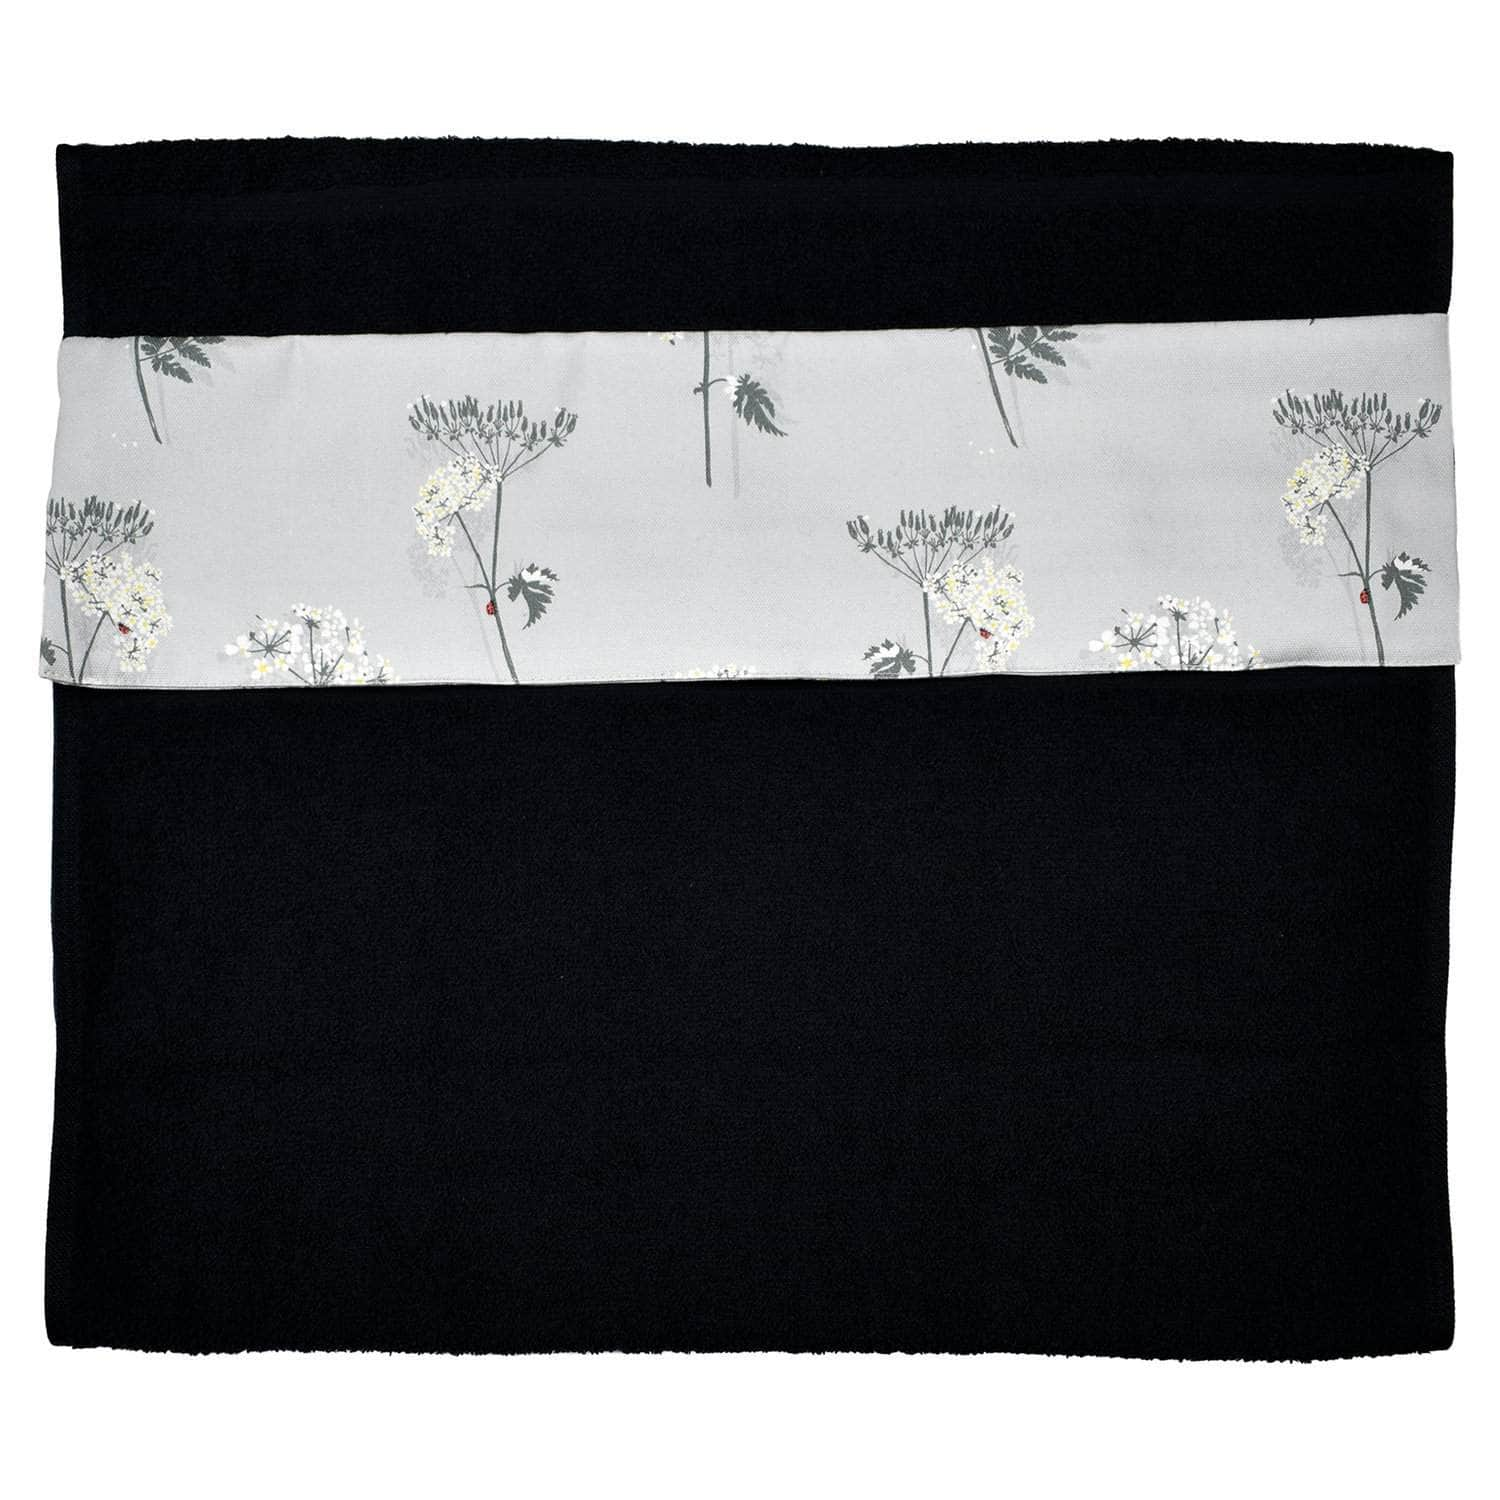 Wide (51 cm) hanging towel with velcro attachment - 'Cow Parsley'